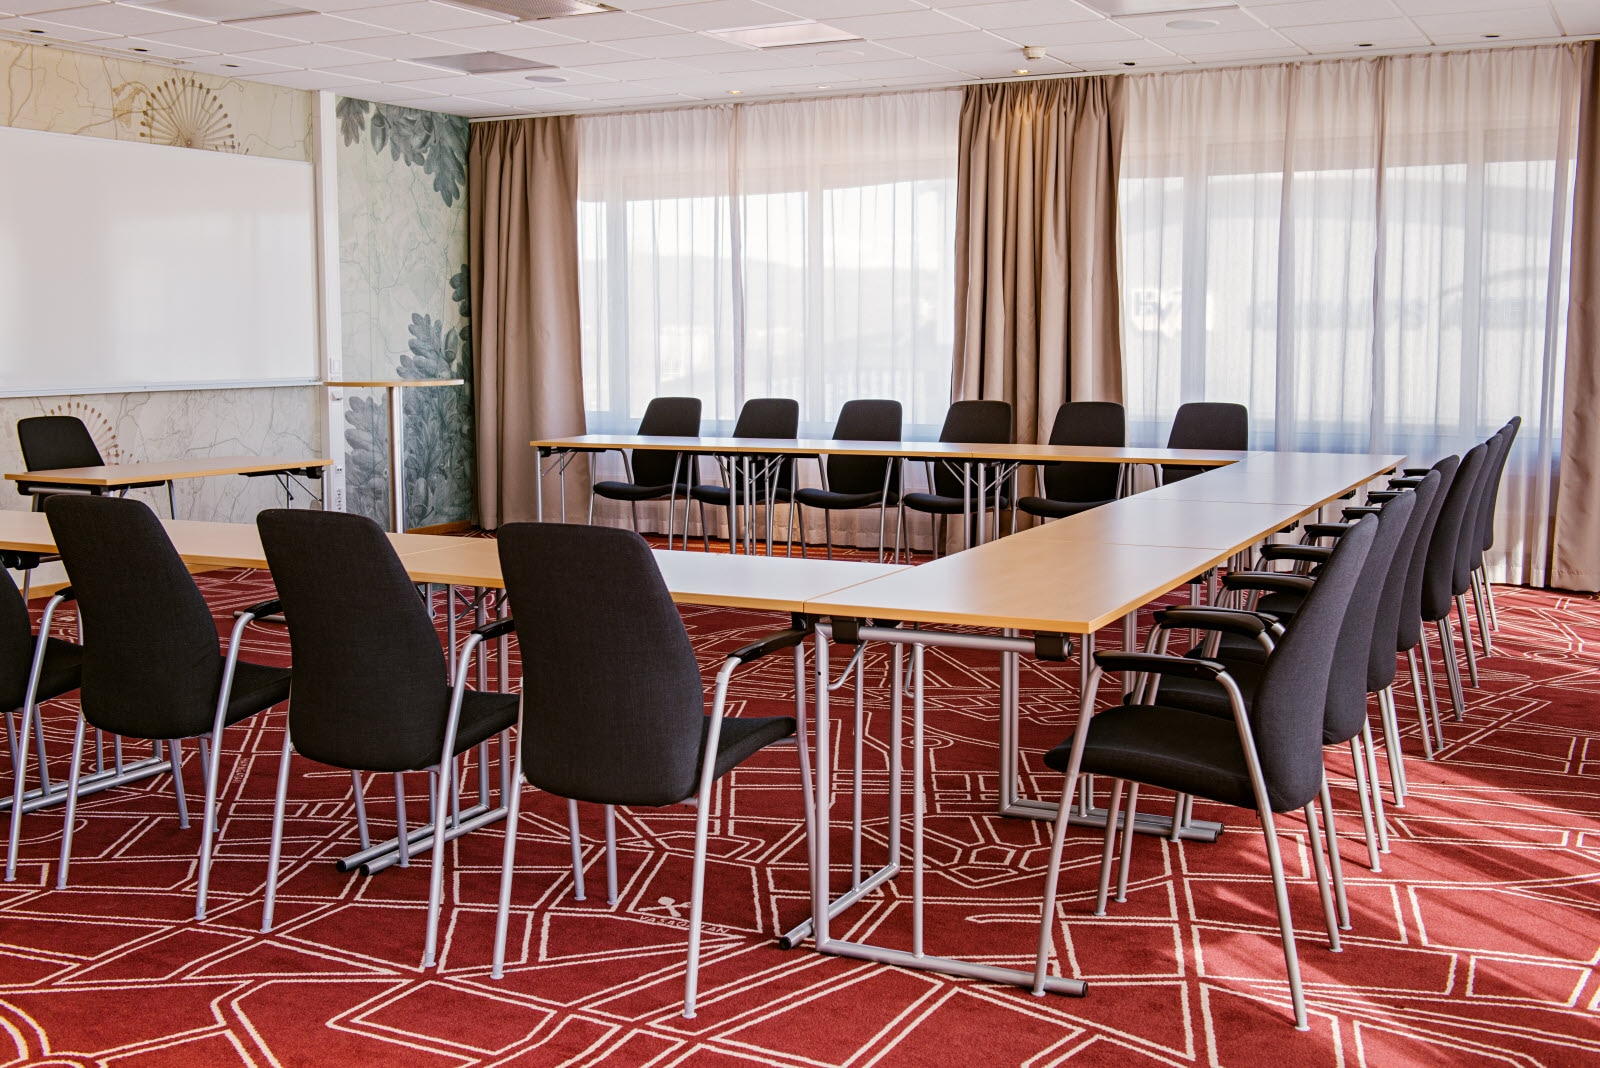 Scandic-Elmia-Interior-conference-meeting-room-Ste.jpg